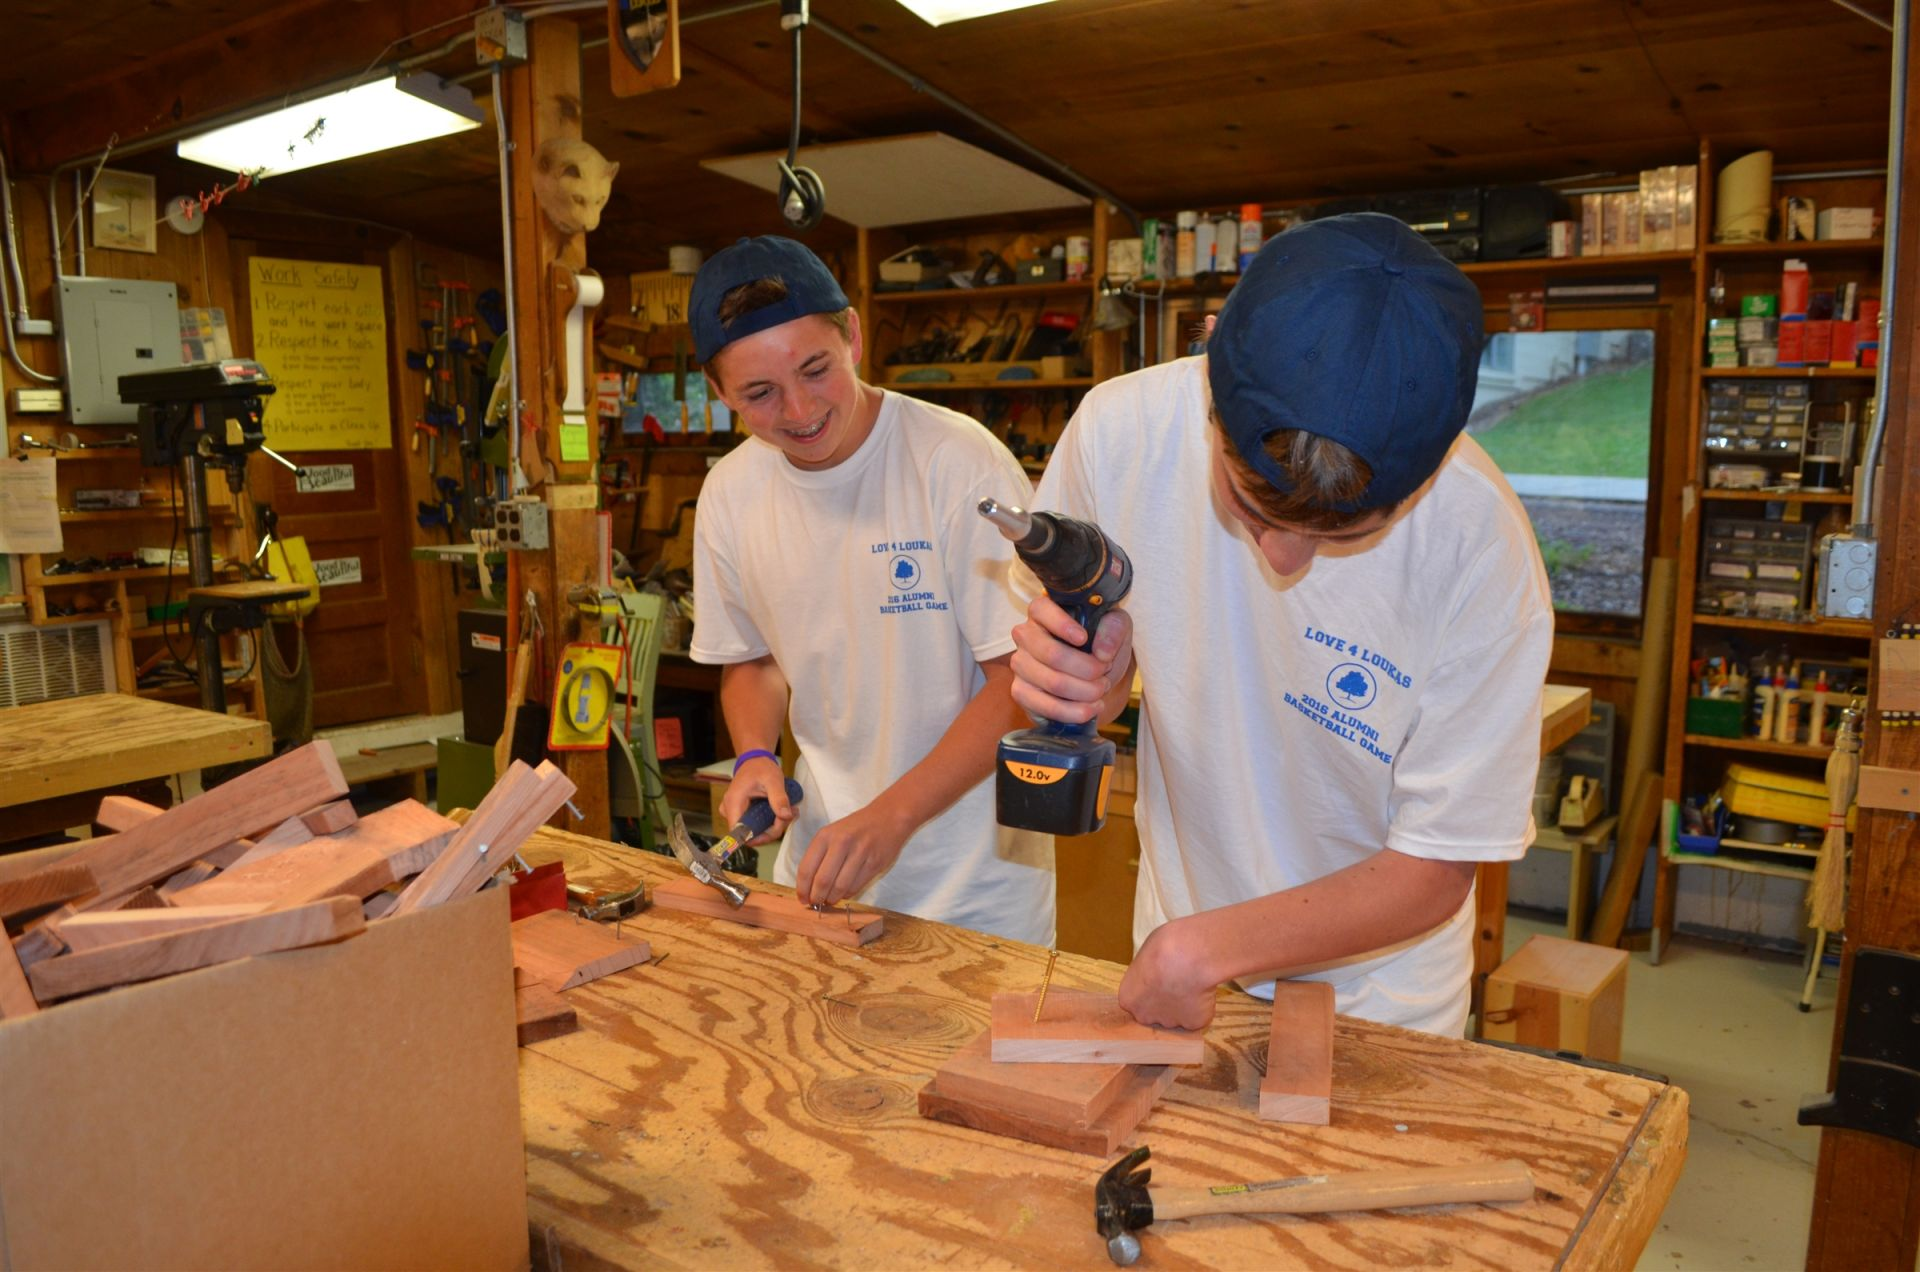 We found many of our alumni returning to the Woodshop. They couldn't wait to pick up a hammer and nails.